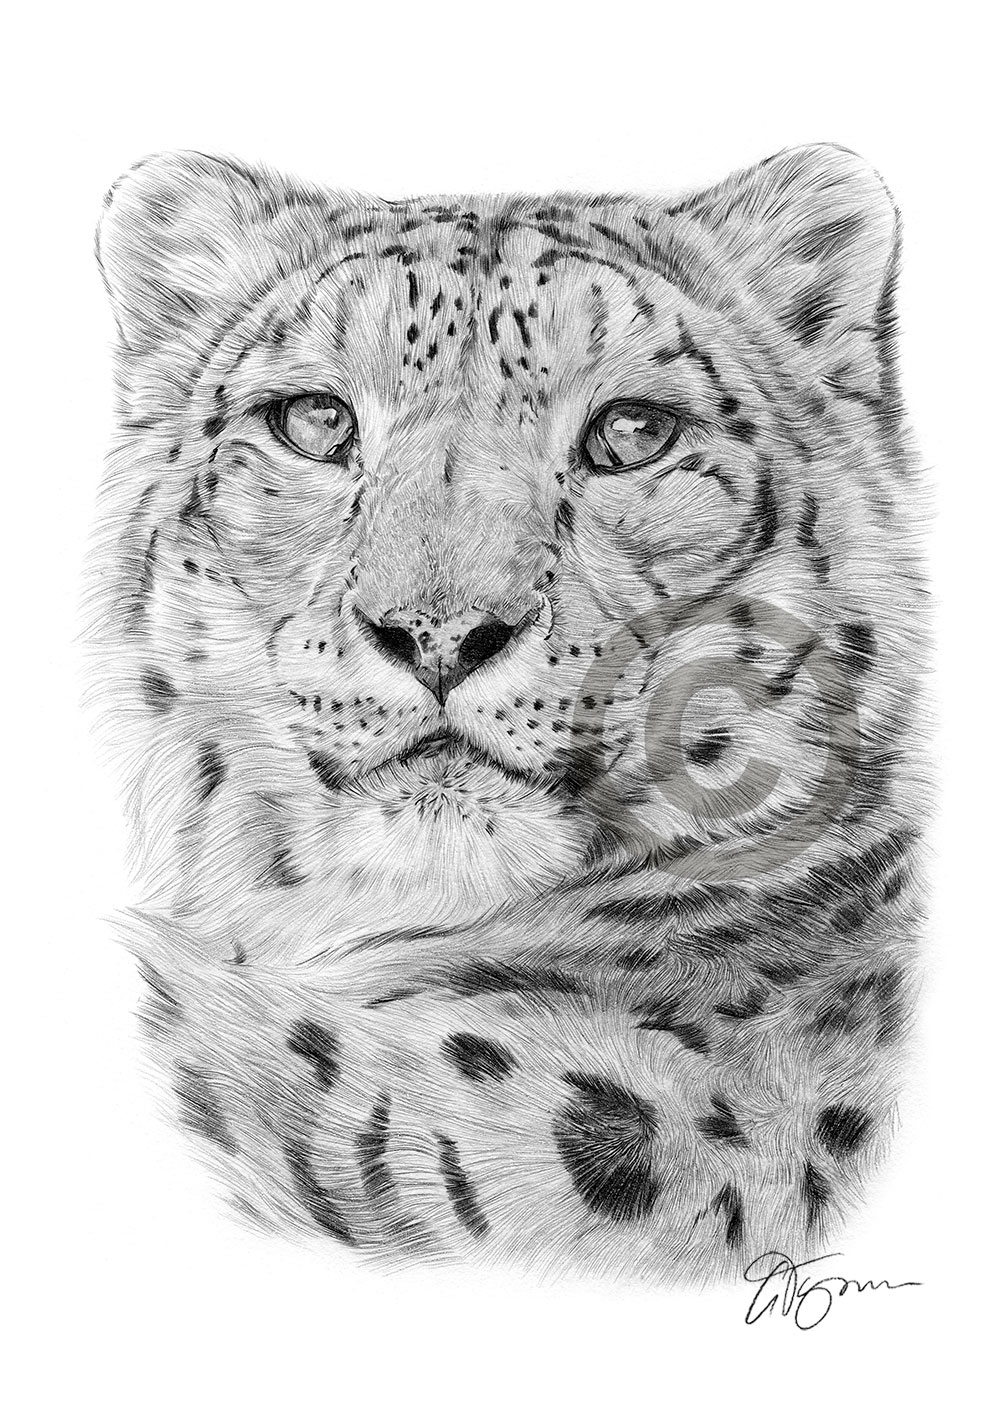 Adult Snow Leopard pencil drawing by artist Gary Tymon